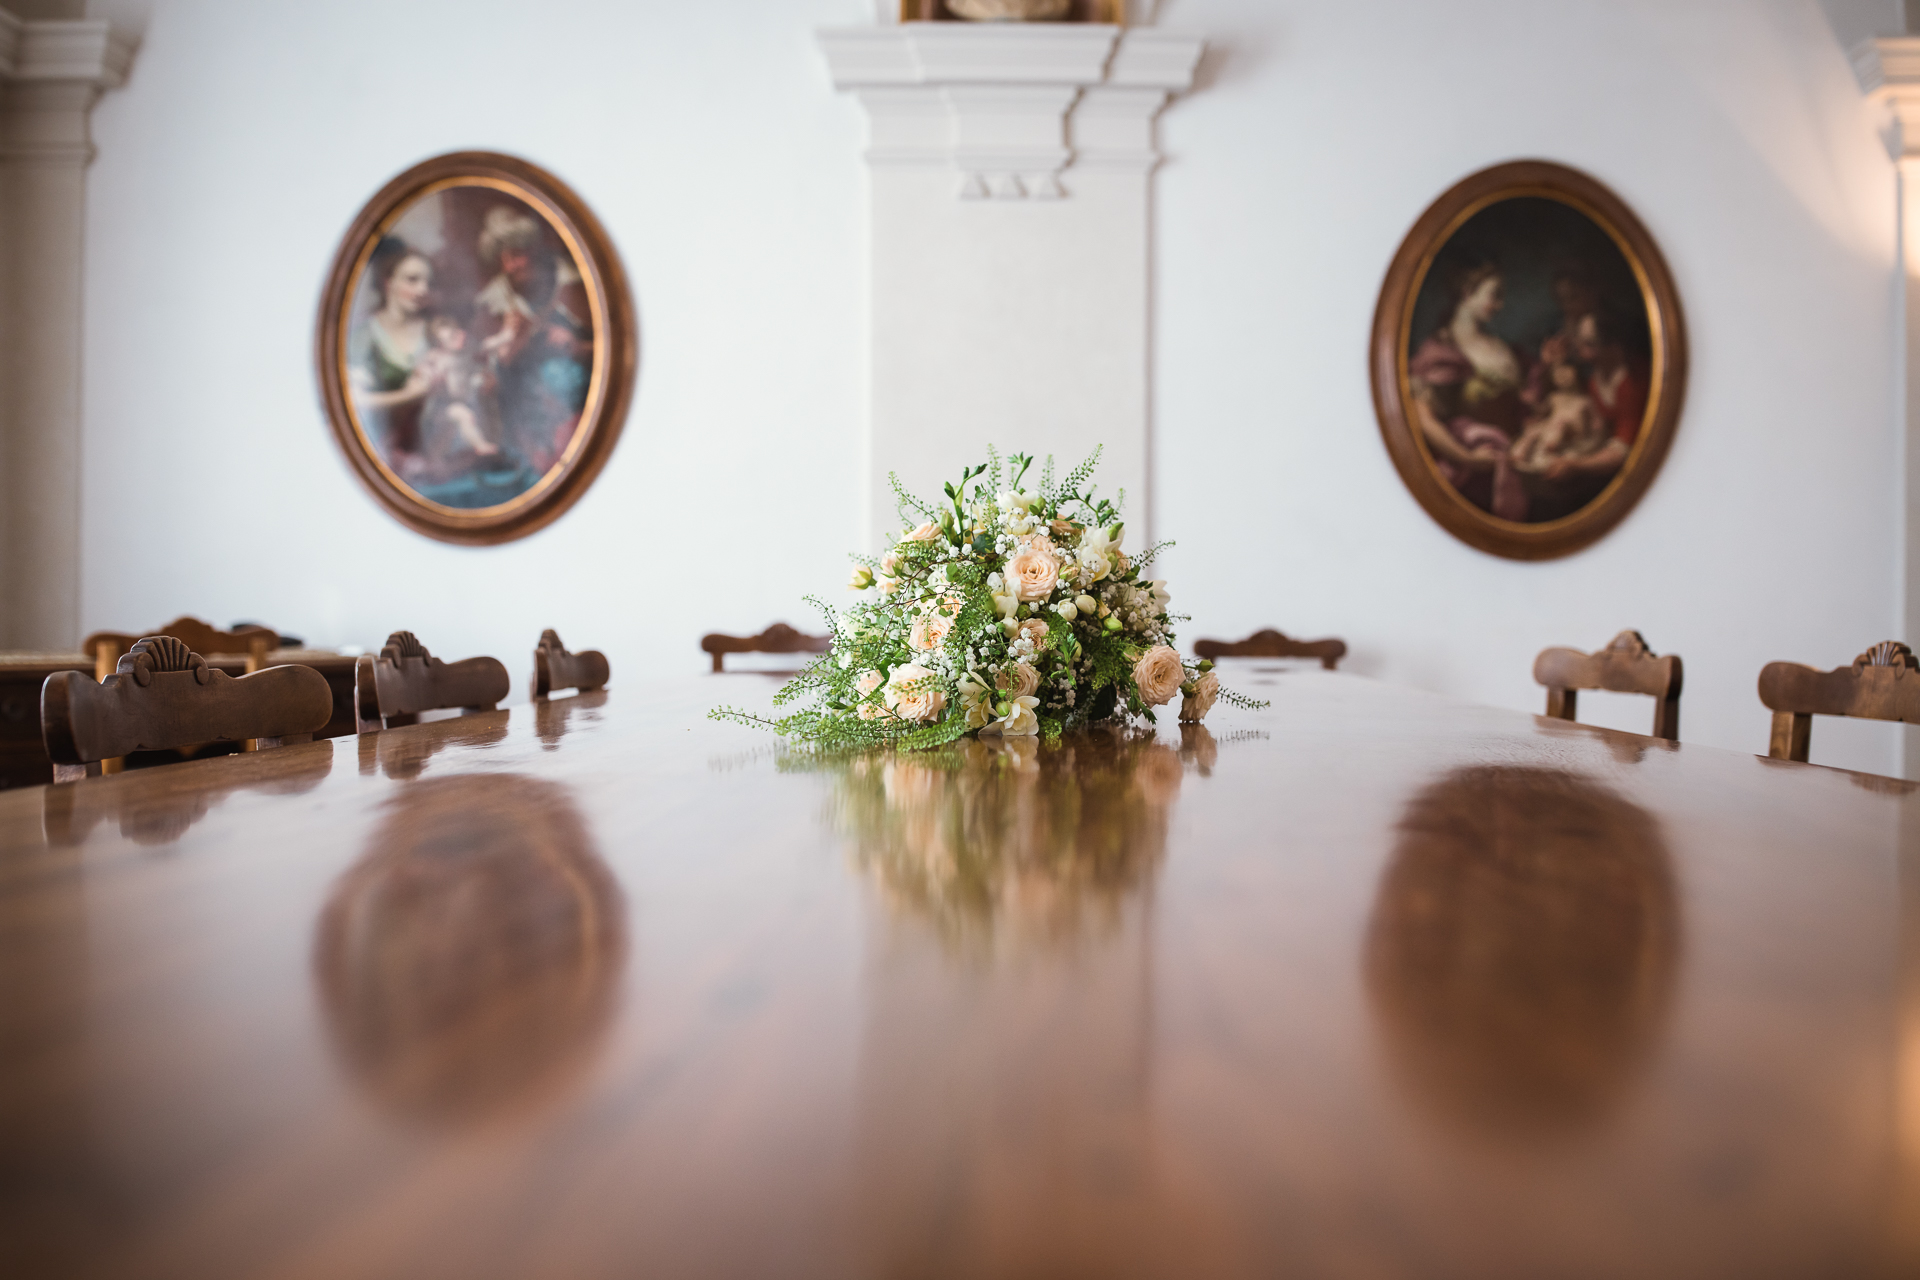 Switzerland Wedding Detail Image | a hint of spring to the city hall's interior, nicely accentuating the room's rich hardwoods